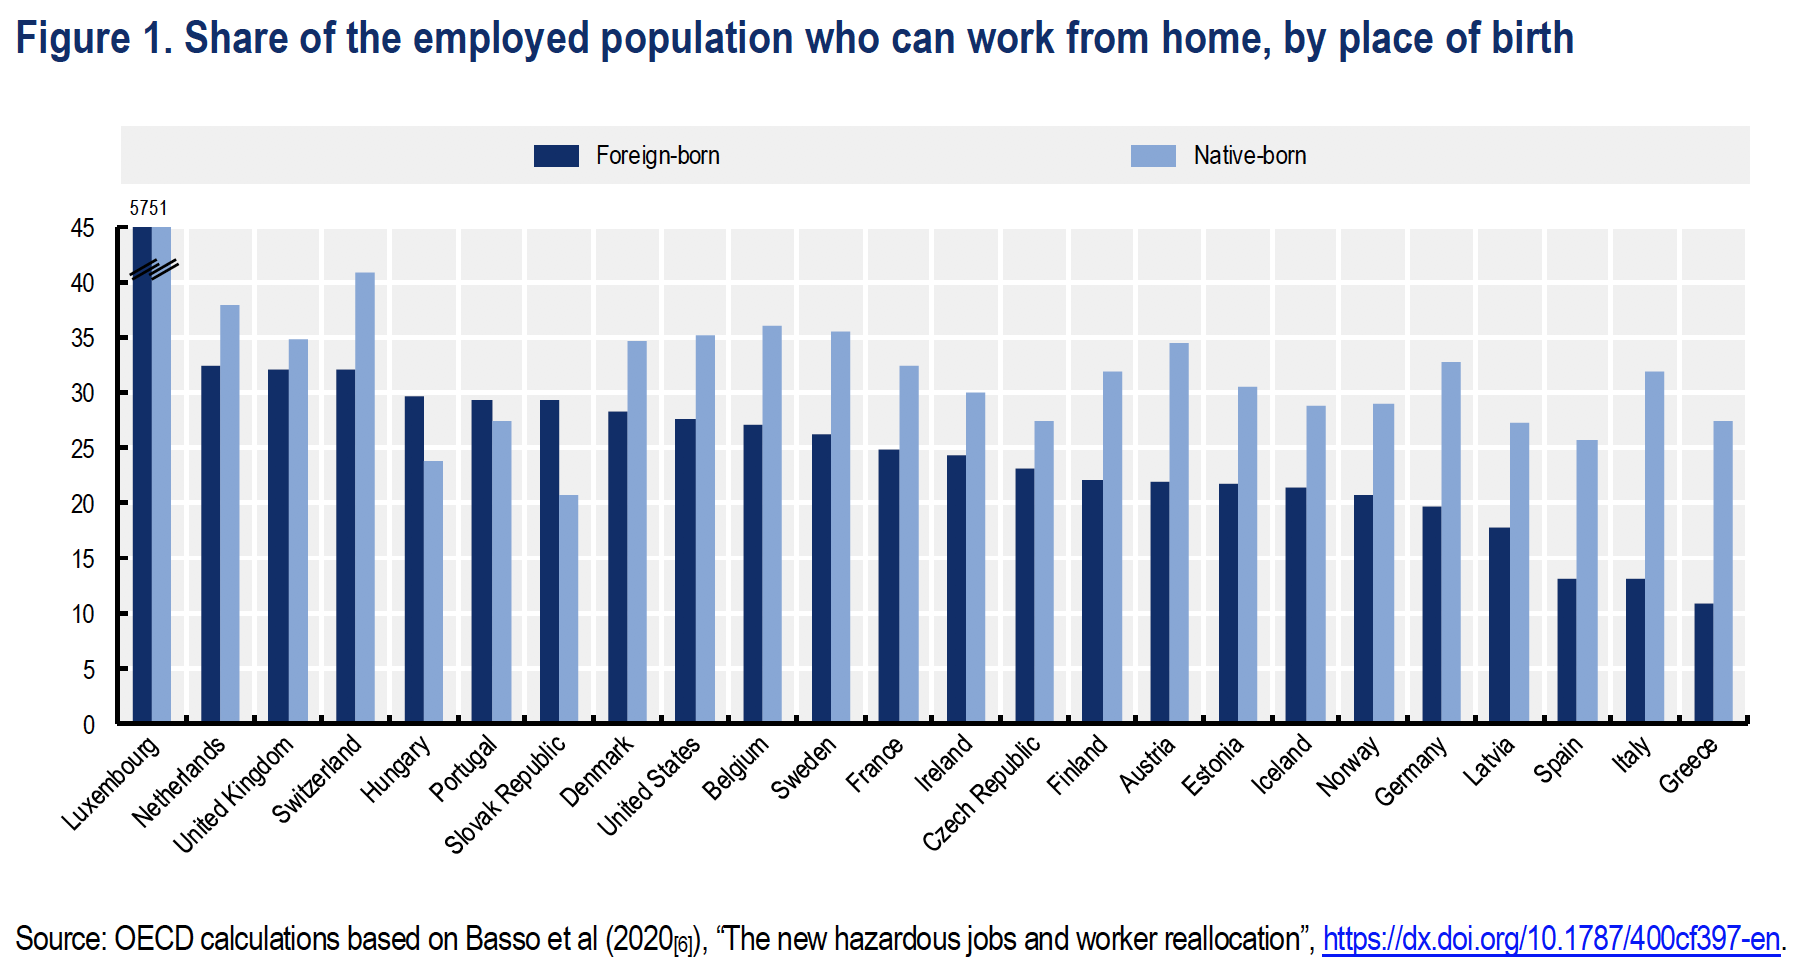 Especially in southern Europe, relatively few migrants can work from home